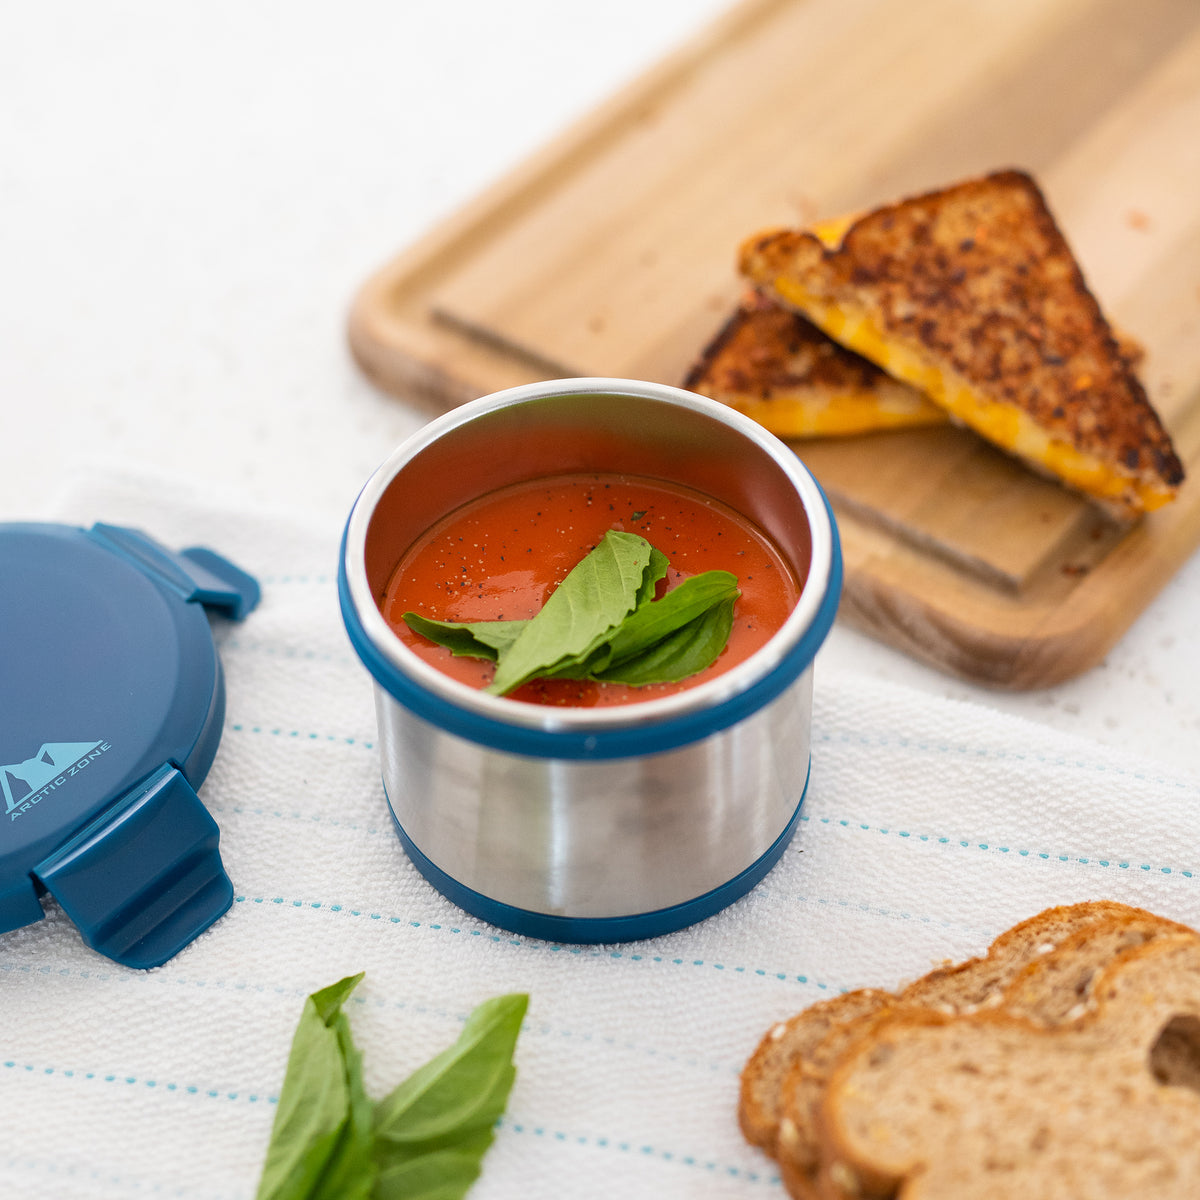 Leak Proof 16oz Thermal Bowl With Safe & Easy 4 Lock Lid - Navy - Lifestyle, Grilled cheese and tomato soup